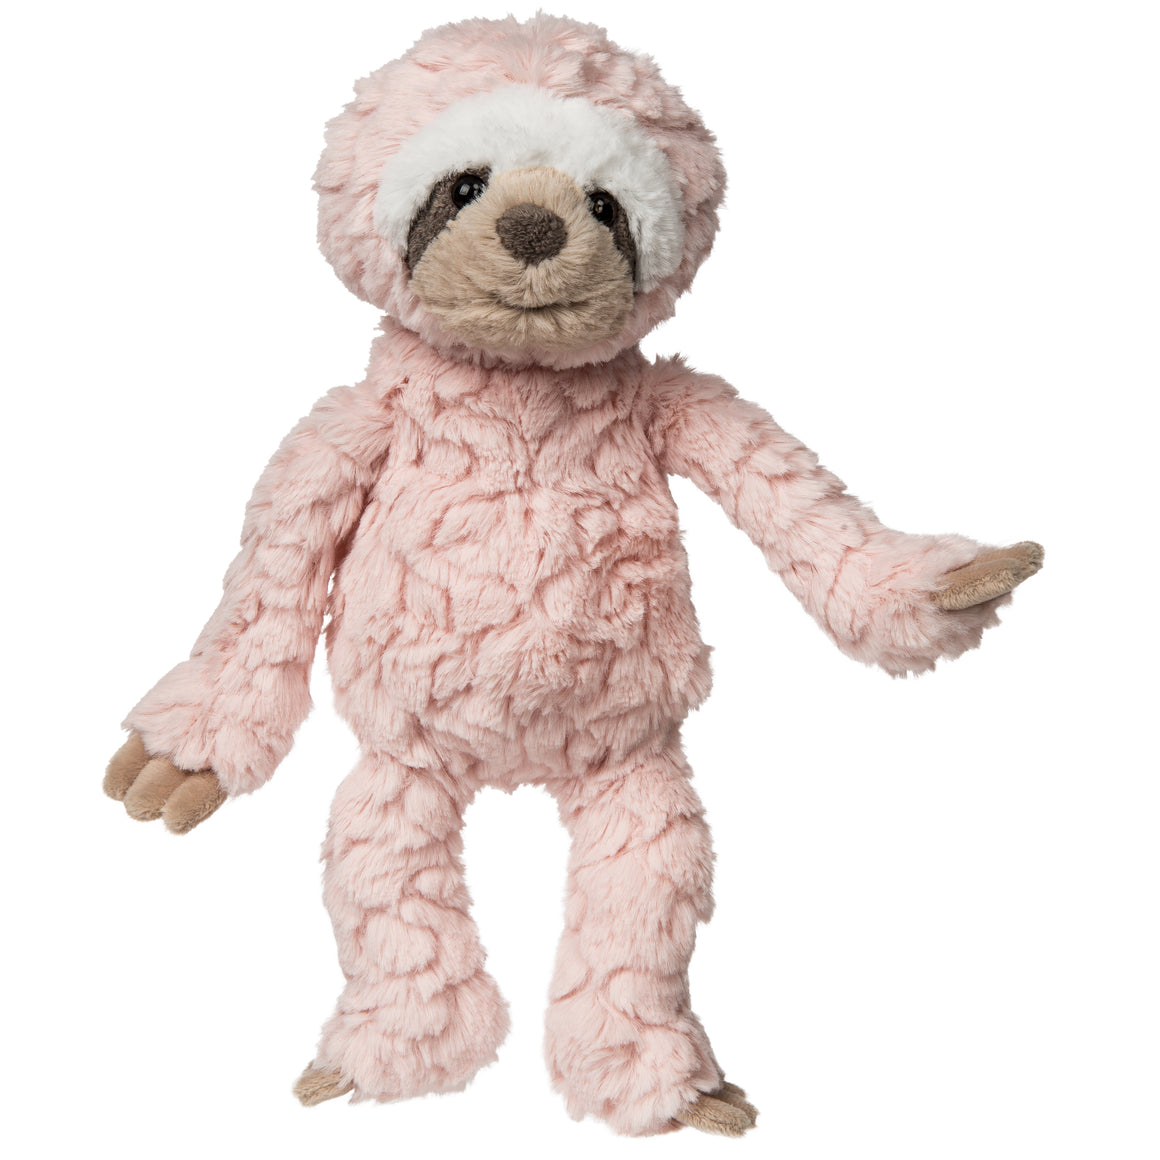 Plush | Blush Putty Baby Sloth | 10″